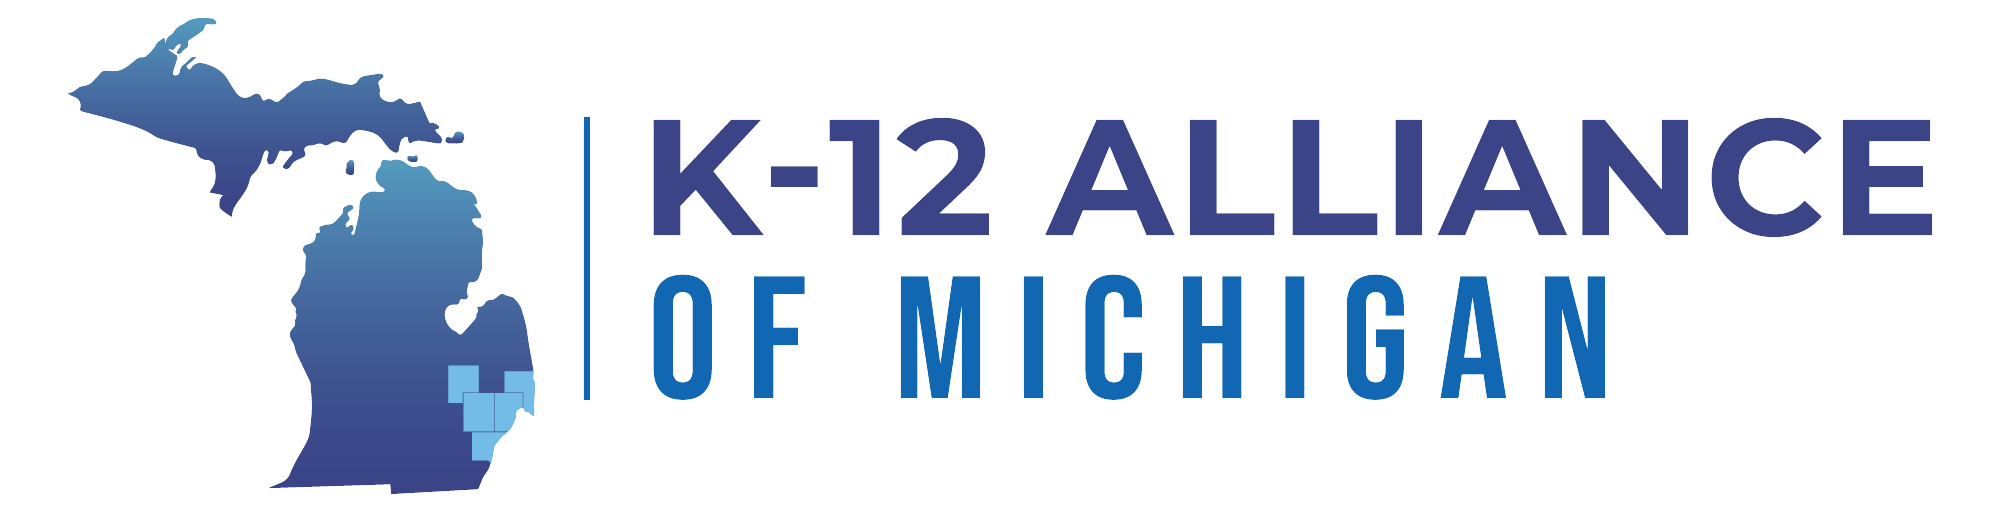 The K-12 Alliance of Michigan